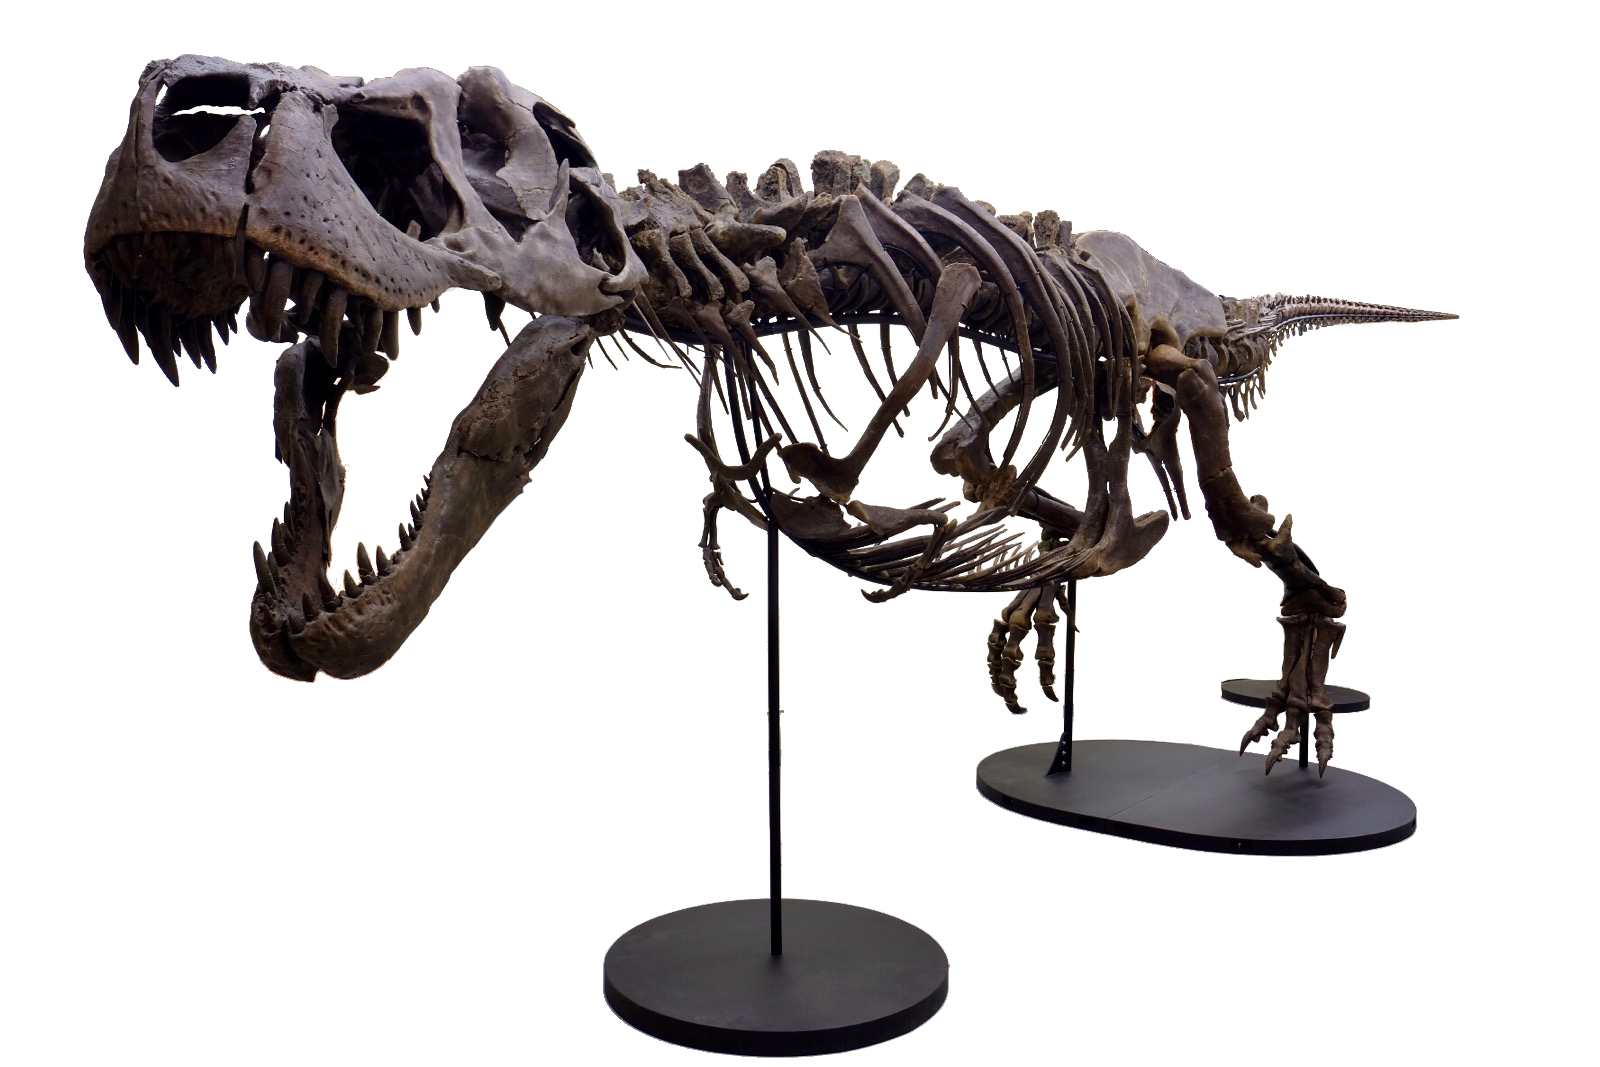 Victoria, second-most complete Tyrannosaurus rex skeleton, set to go on display